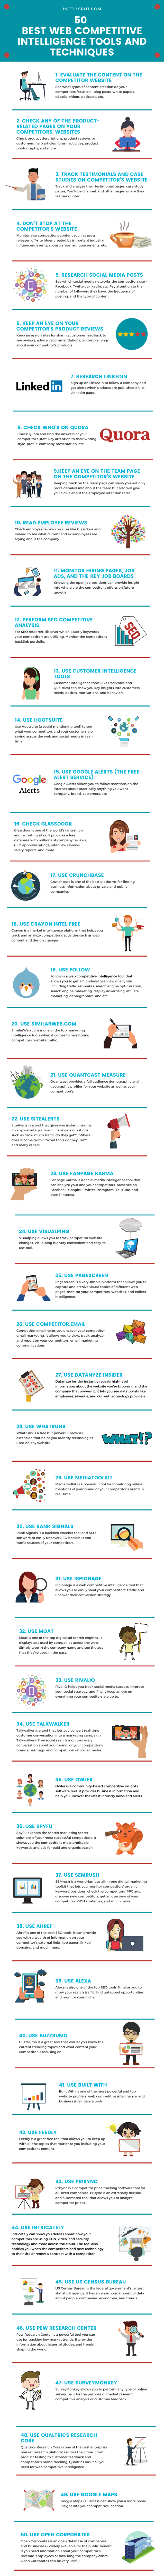 50 Best Web Competitive Intelligence Techniques And Tools - infographic